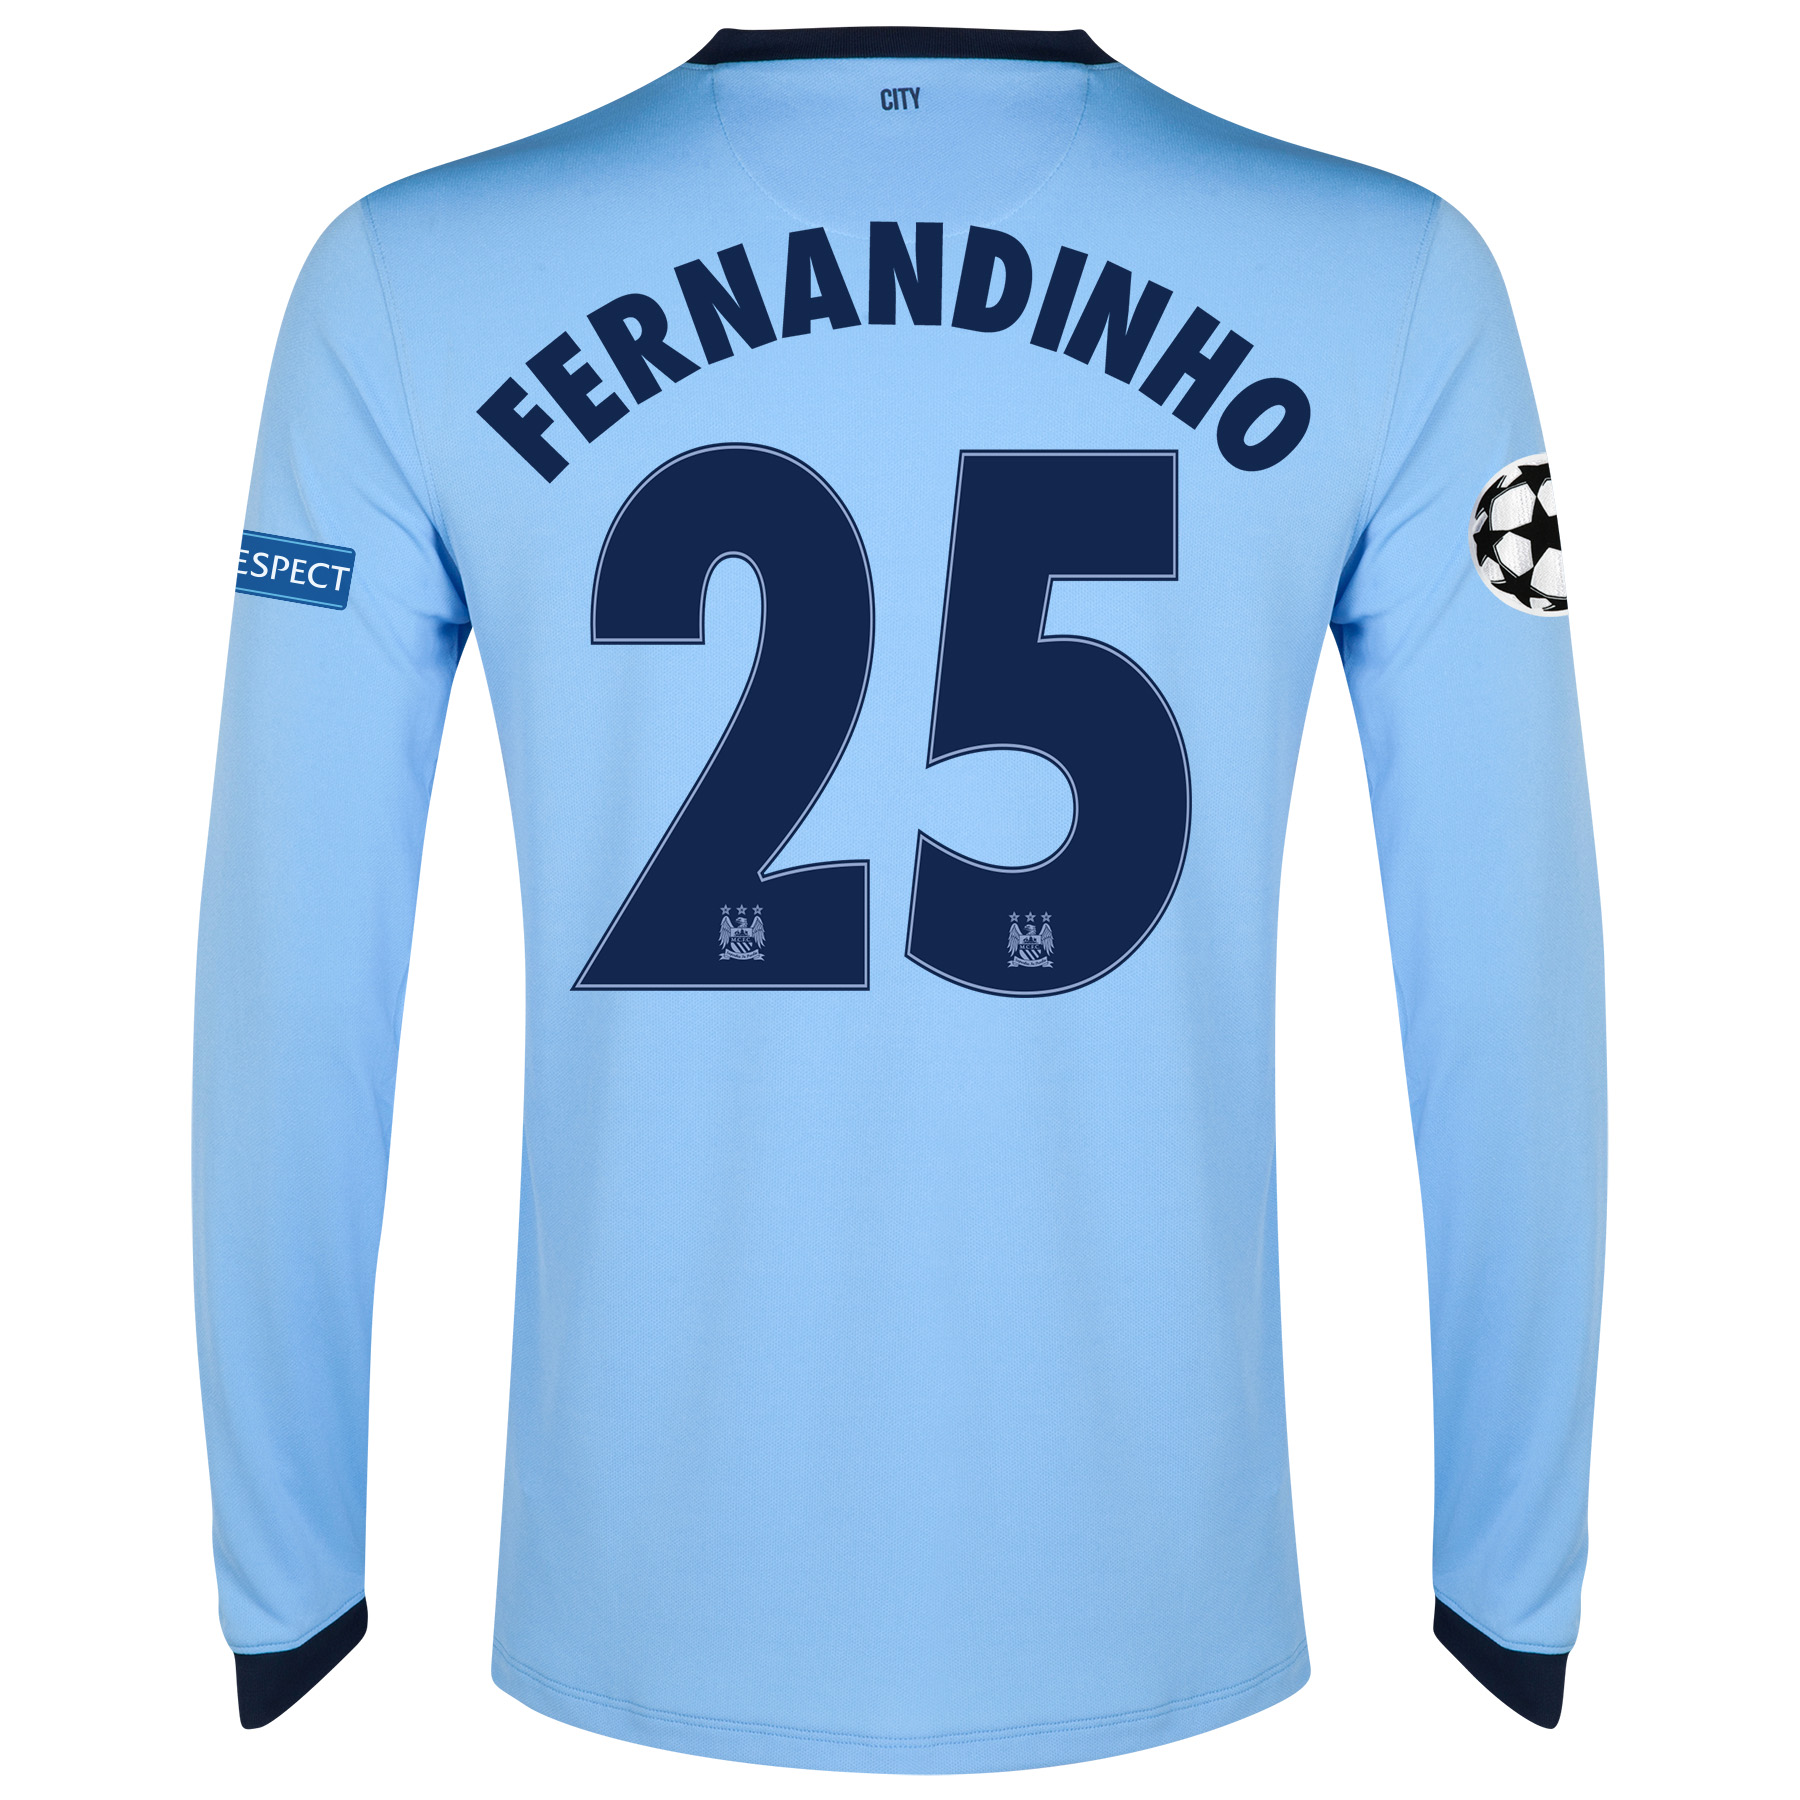 Manchester City UEFA Champions League Home Shirt 2014/15 - Long Sleeve - Kids Sky Blue with Fernandinho 25 printing